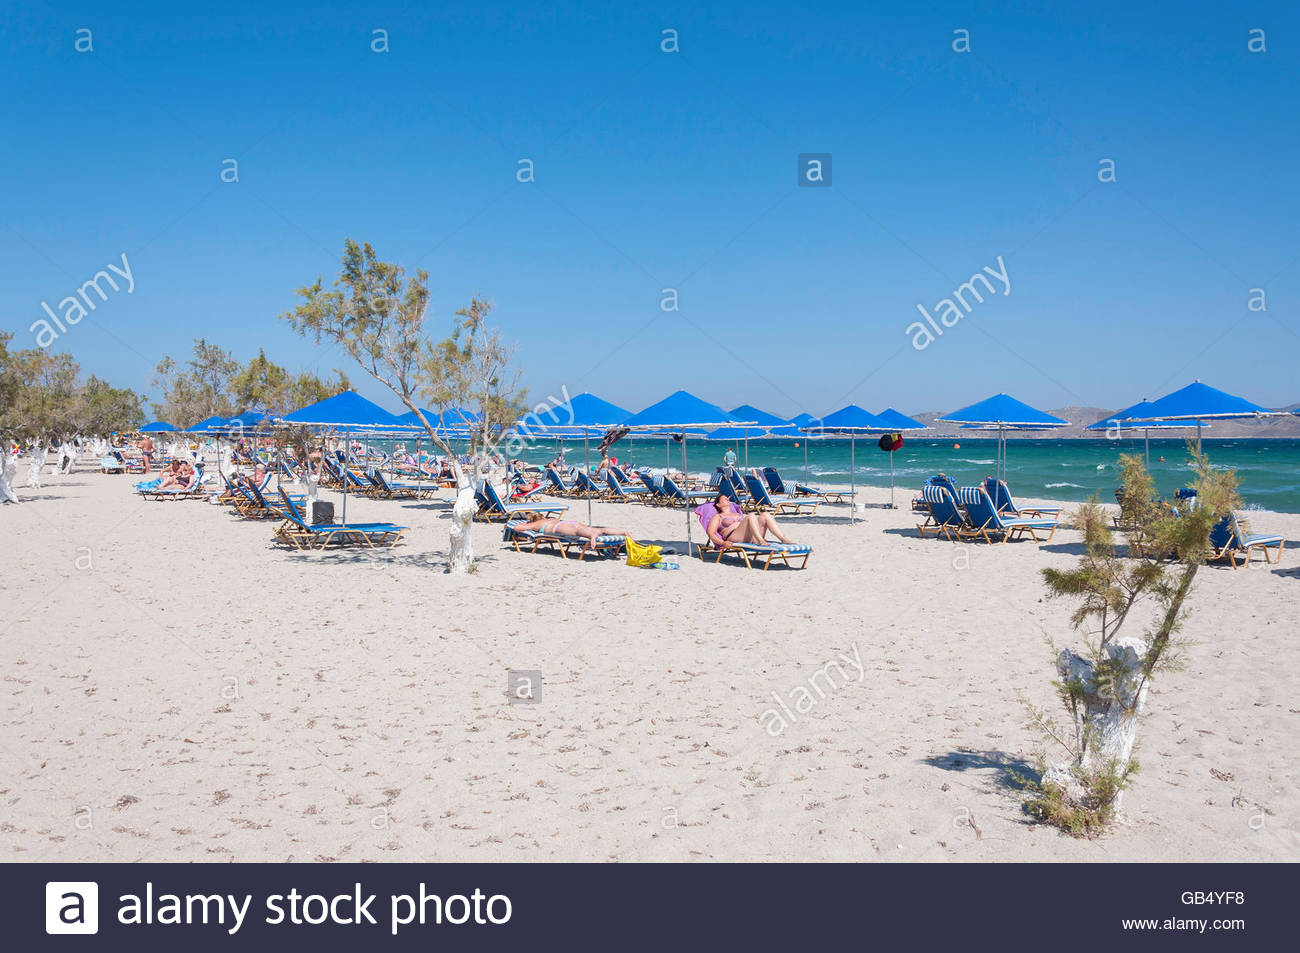 Tigaki Beach Rhodes and the Dodecanese, Tigaki Beach Kos Stock Photos & Tigaki Beach Kos Stock Images - Alamy